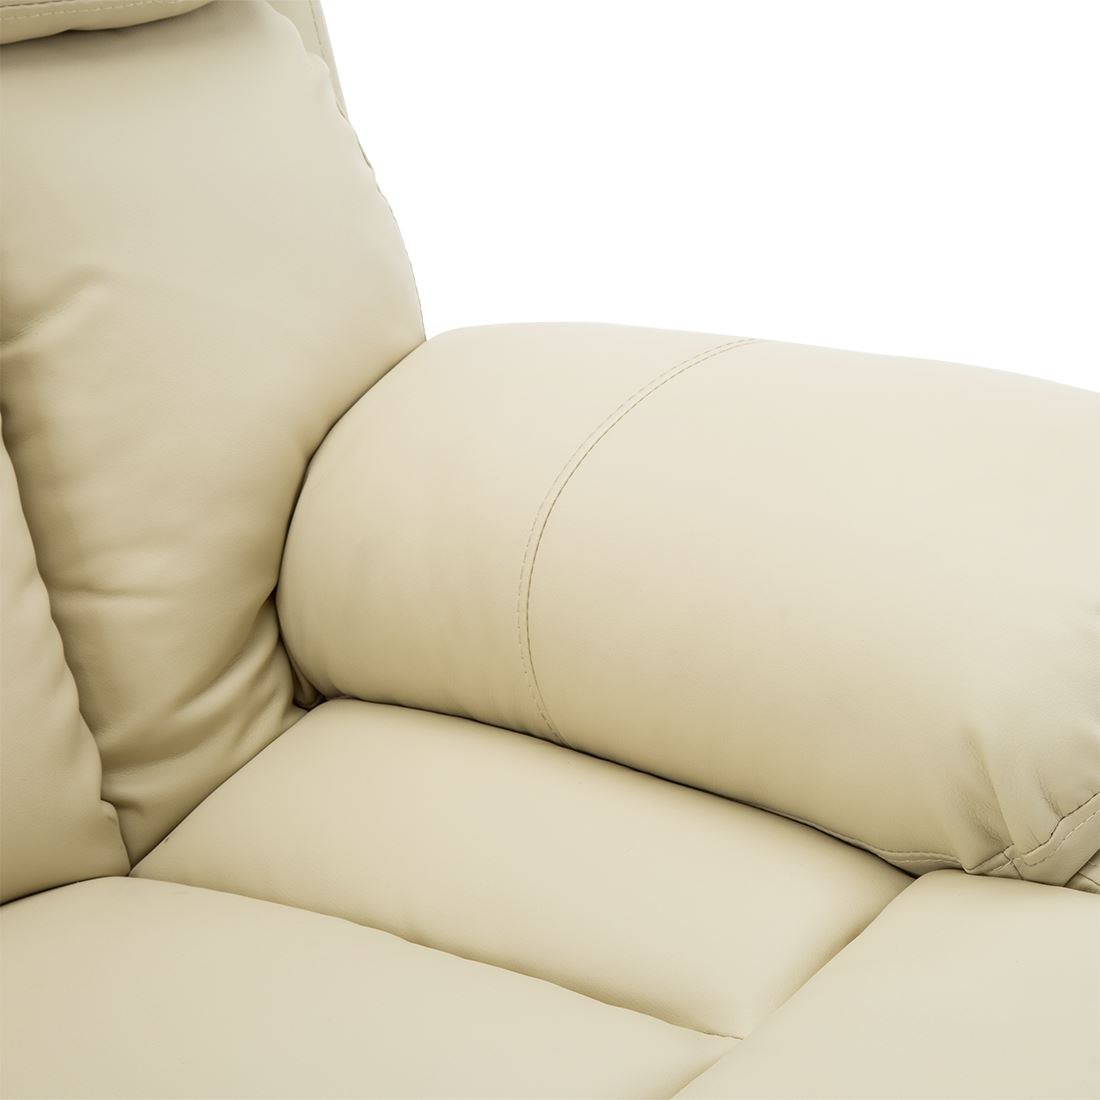 CHESTER-ELECTRIC-RISE-LEATHER-RECLINER-POWER-ARMCHAIR-HEATED-MASSAGE-SOFA-CHAIR thumbnail 26